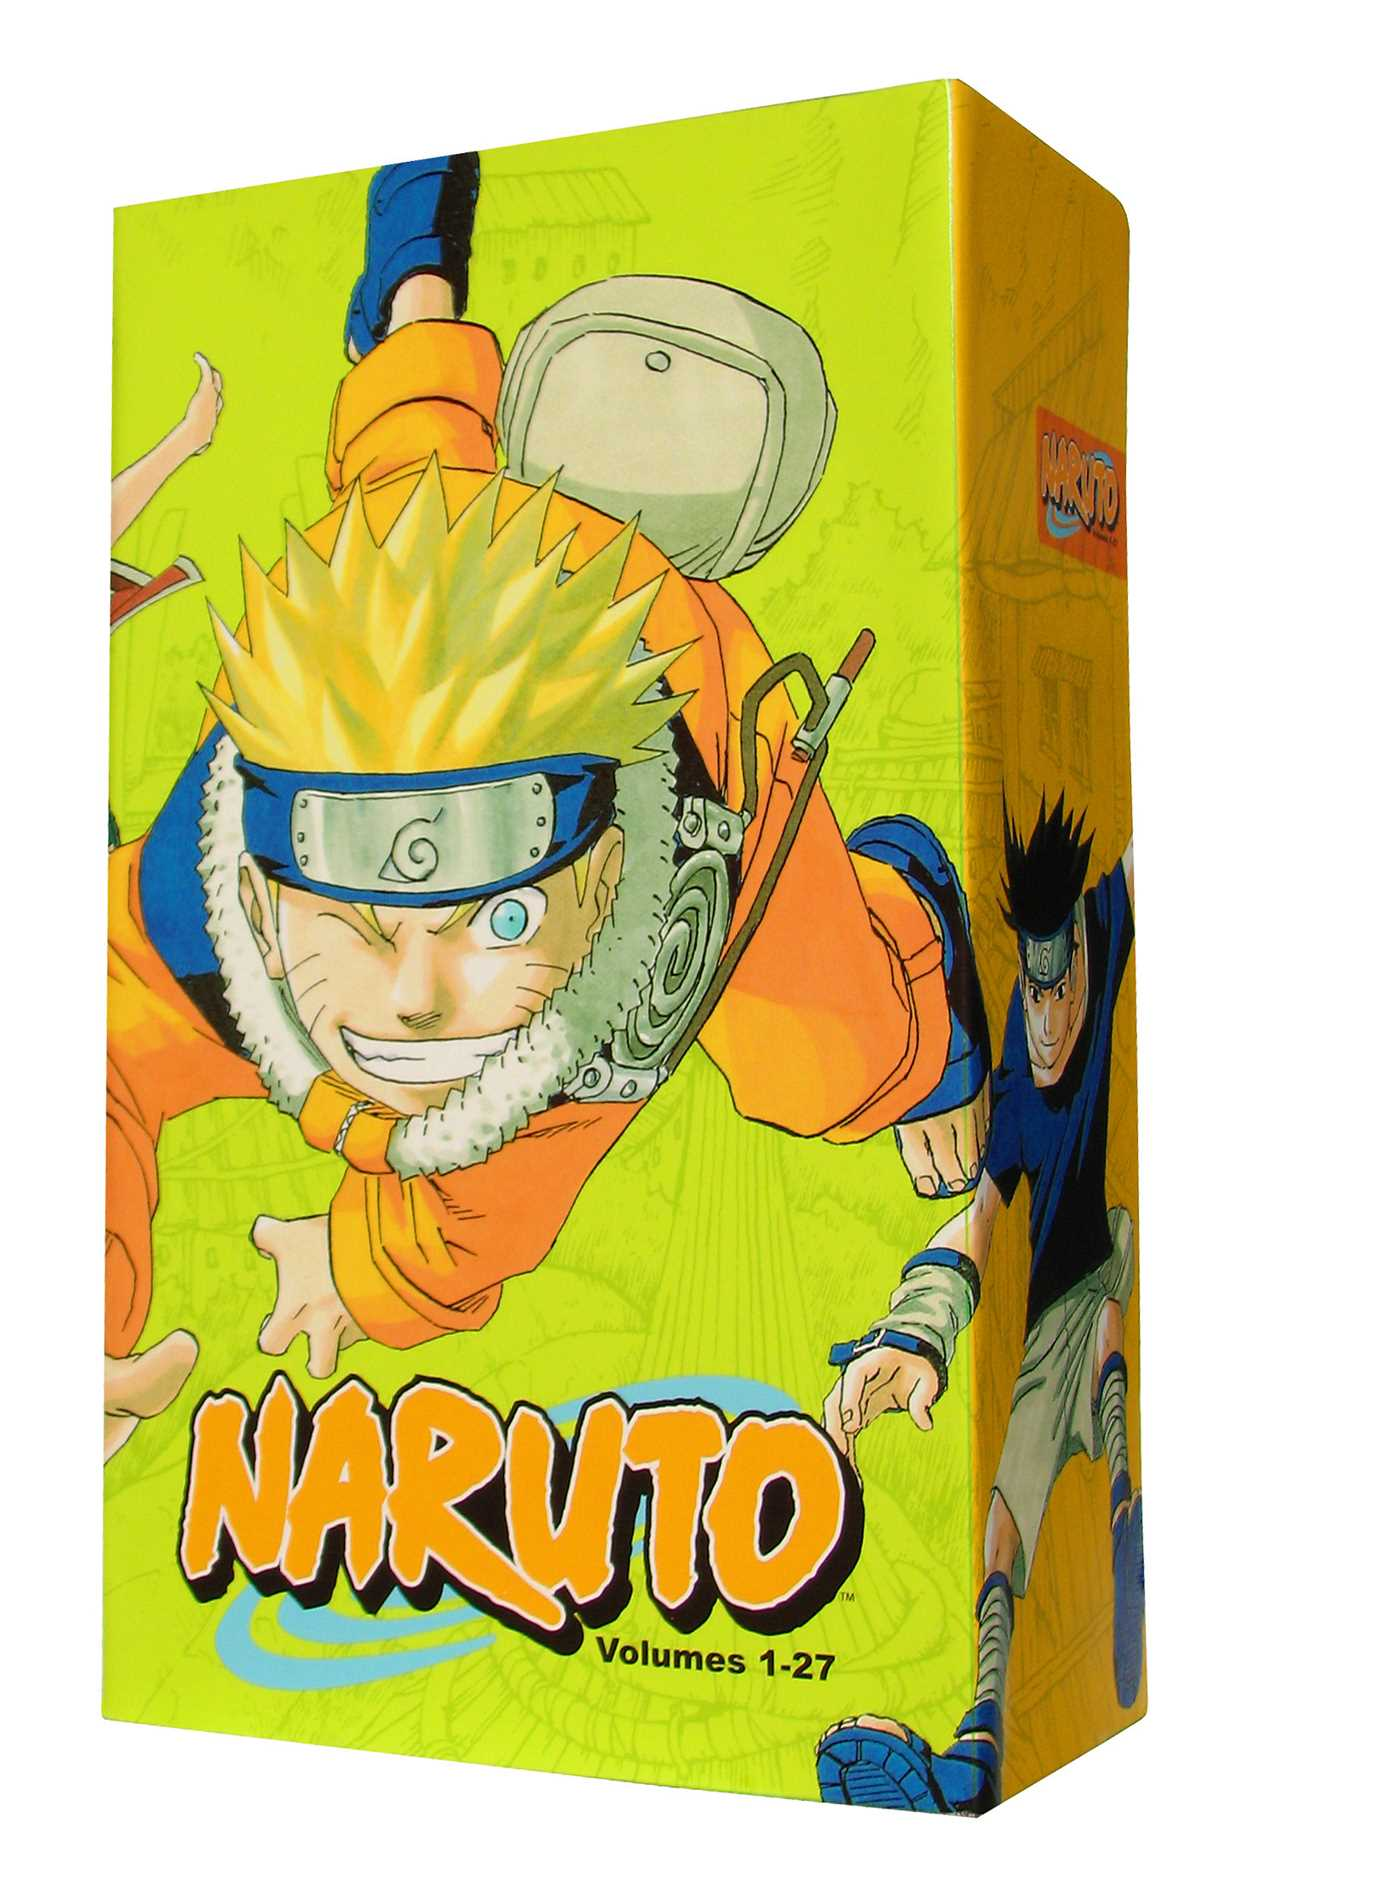 naruto-2008-box-set-vol-s-1-27-9781421525822_hr.jpg